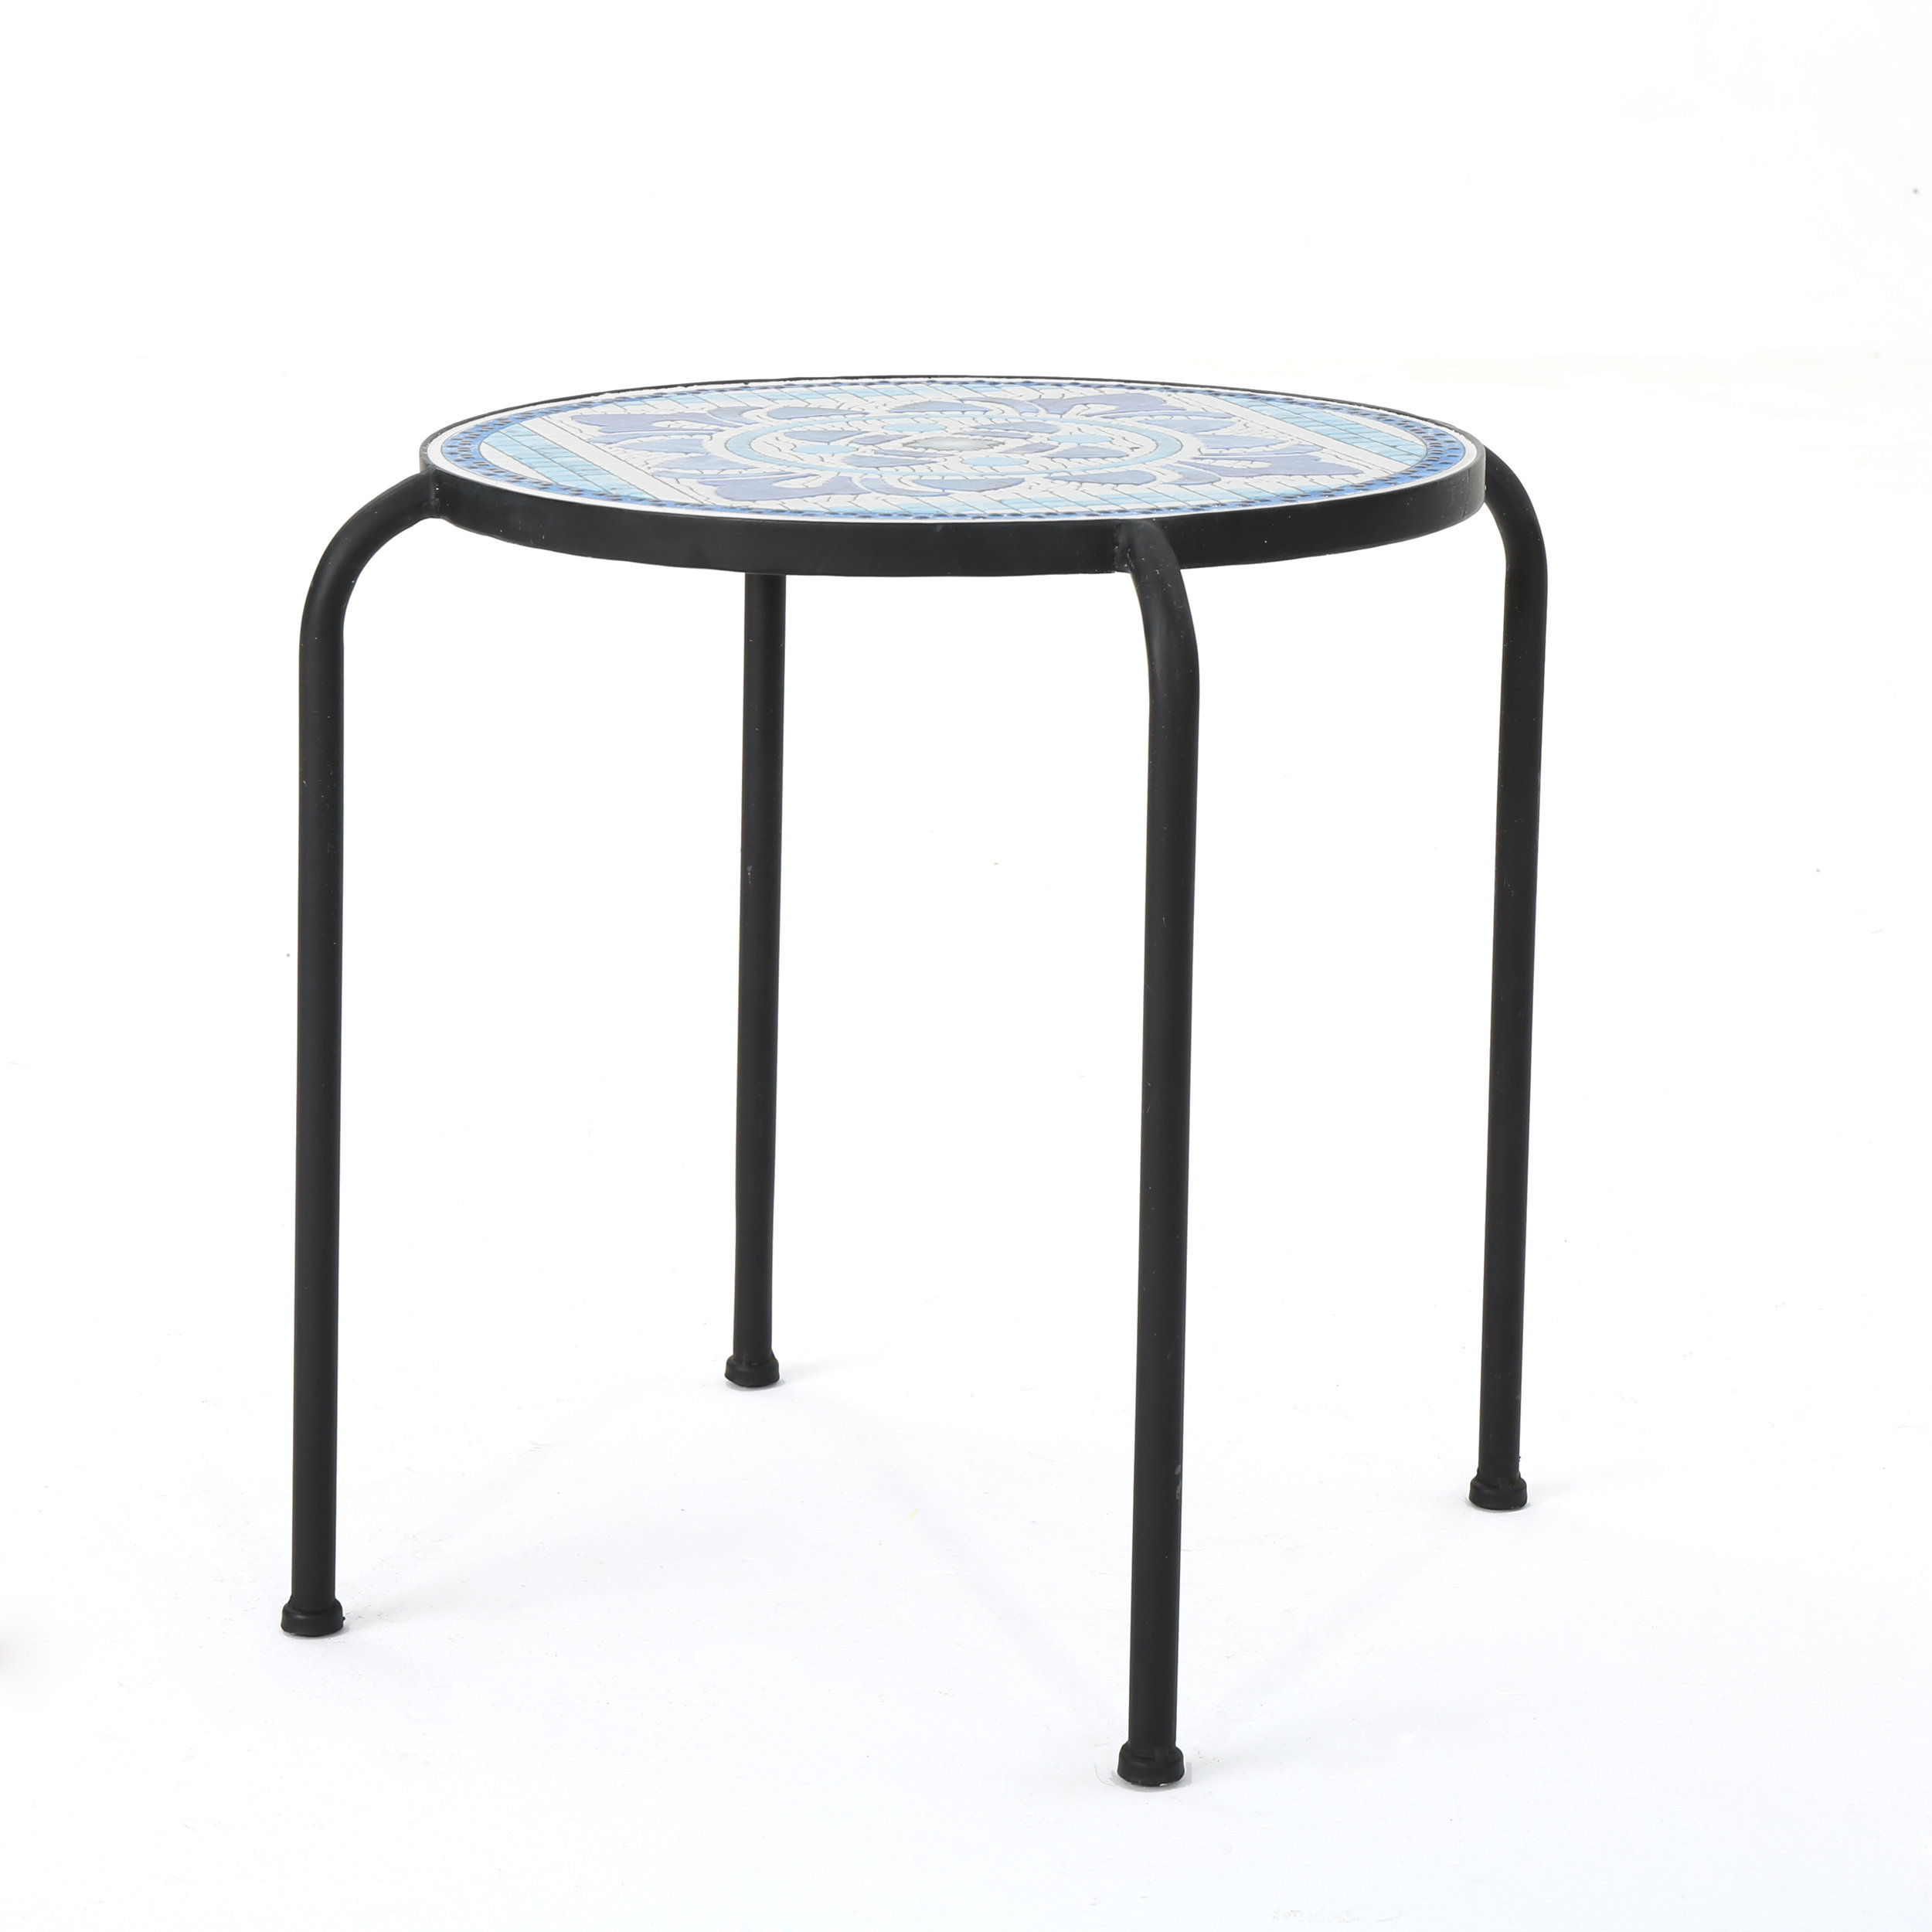 lark manor hayley outdoor side table reviews grey yellow area rug round metal and glass end tables marble top coffee with drawers unfinished dining legs entrance drop down kitchen